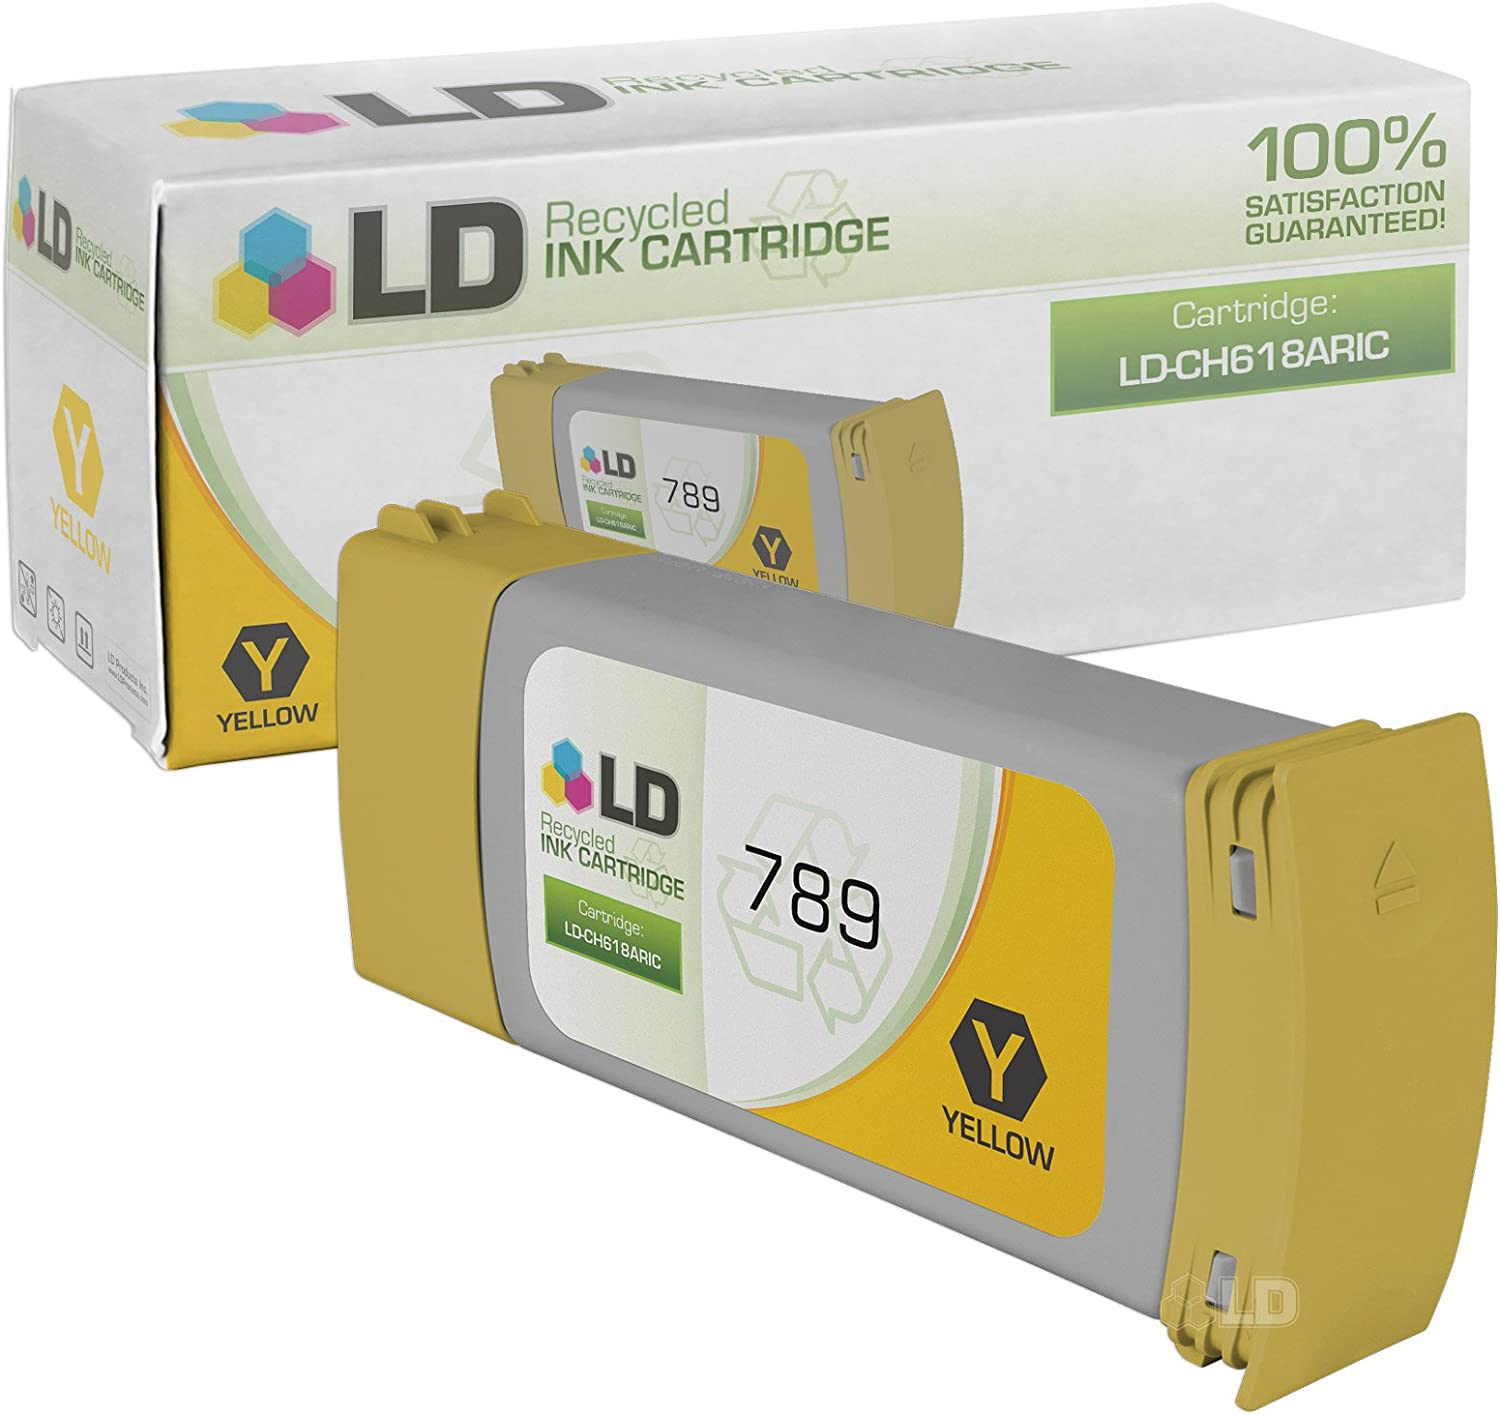 LD Remanufactured Ink Cartridge Replacement for HP 789 CH618A (Yellow)